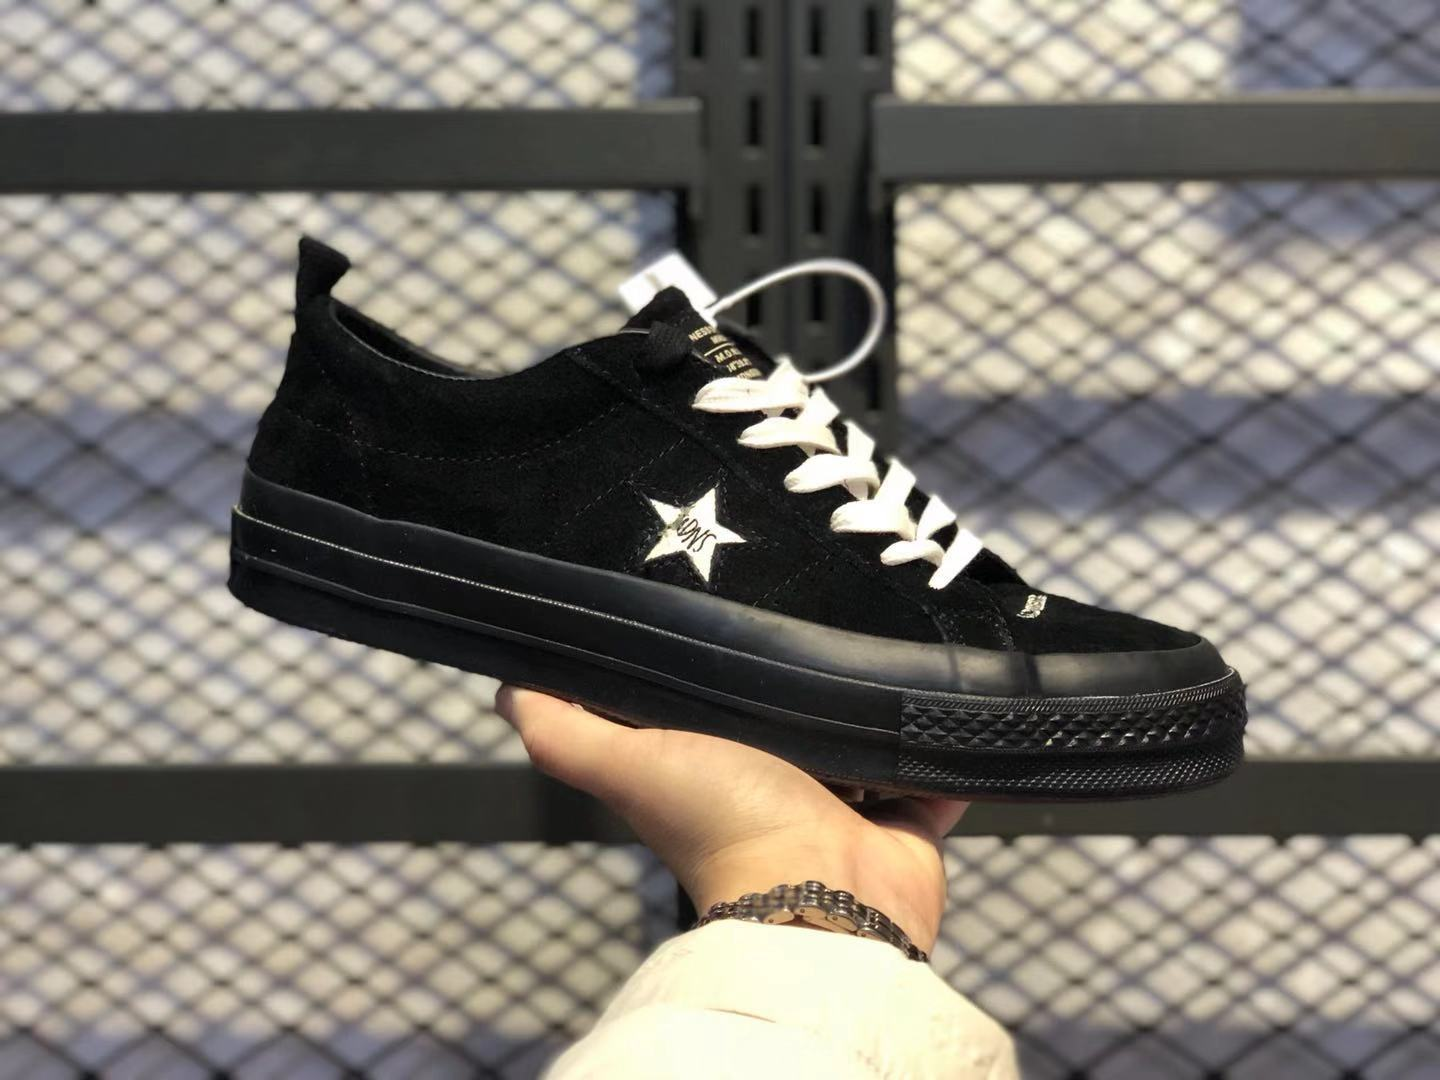 Madness x Converse One Star Snowflake Flocking All Black/Beige For Buy